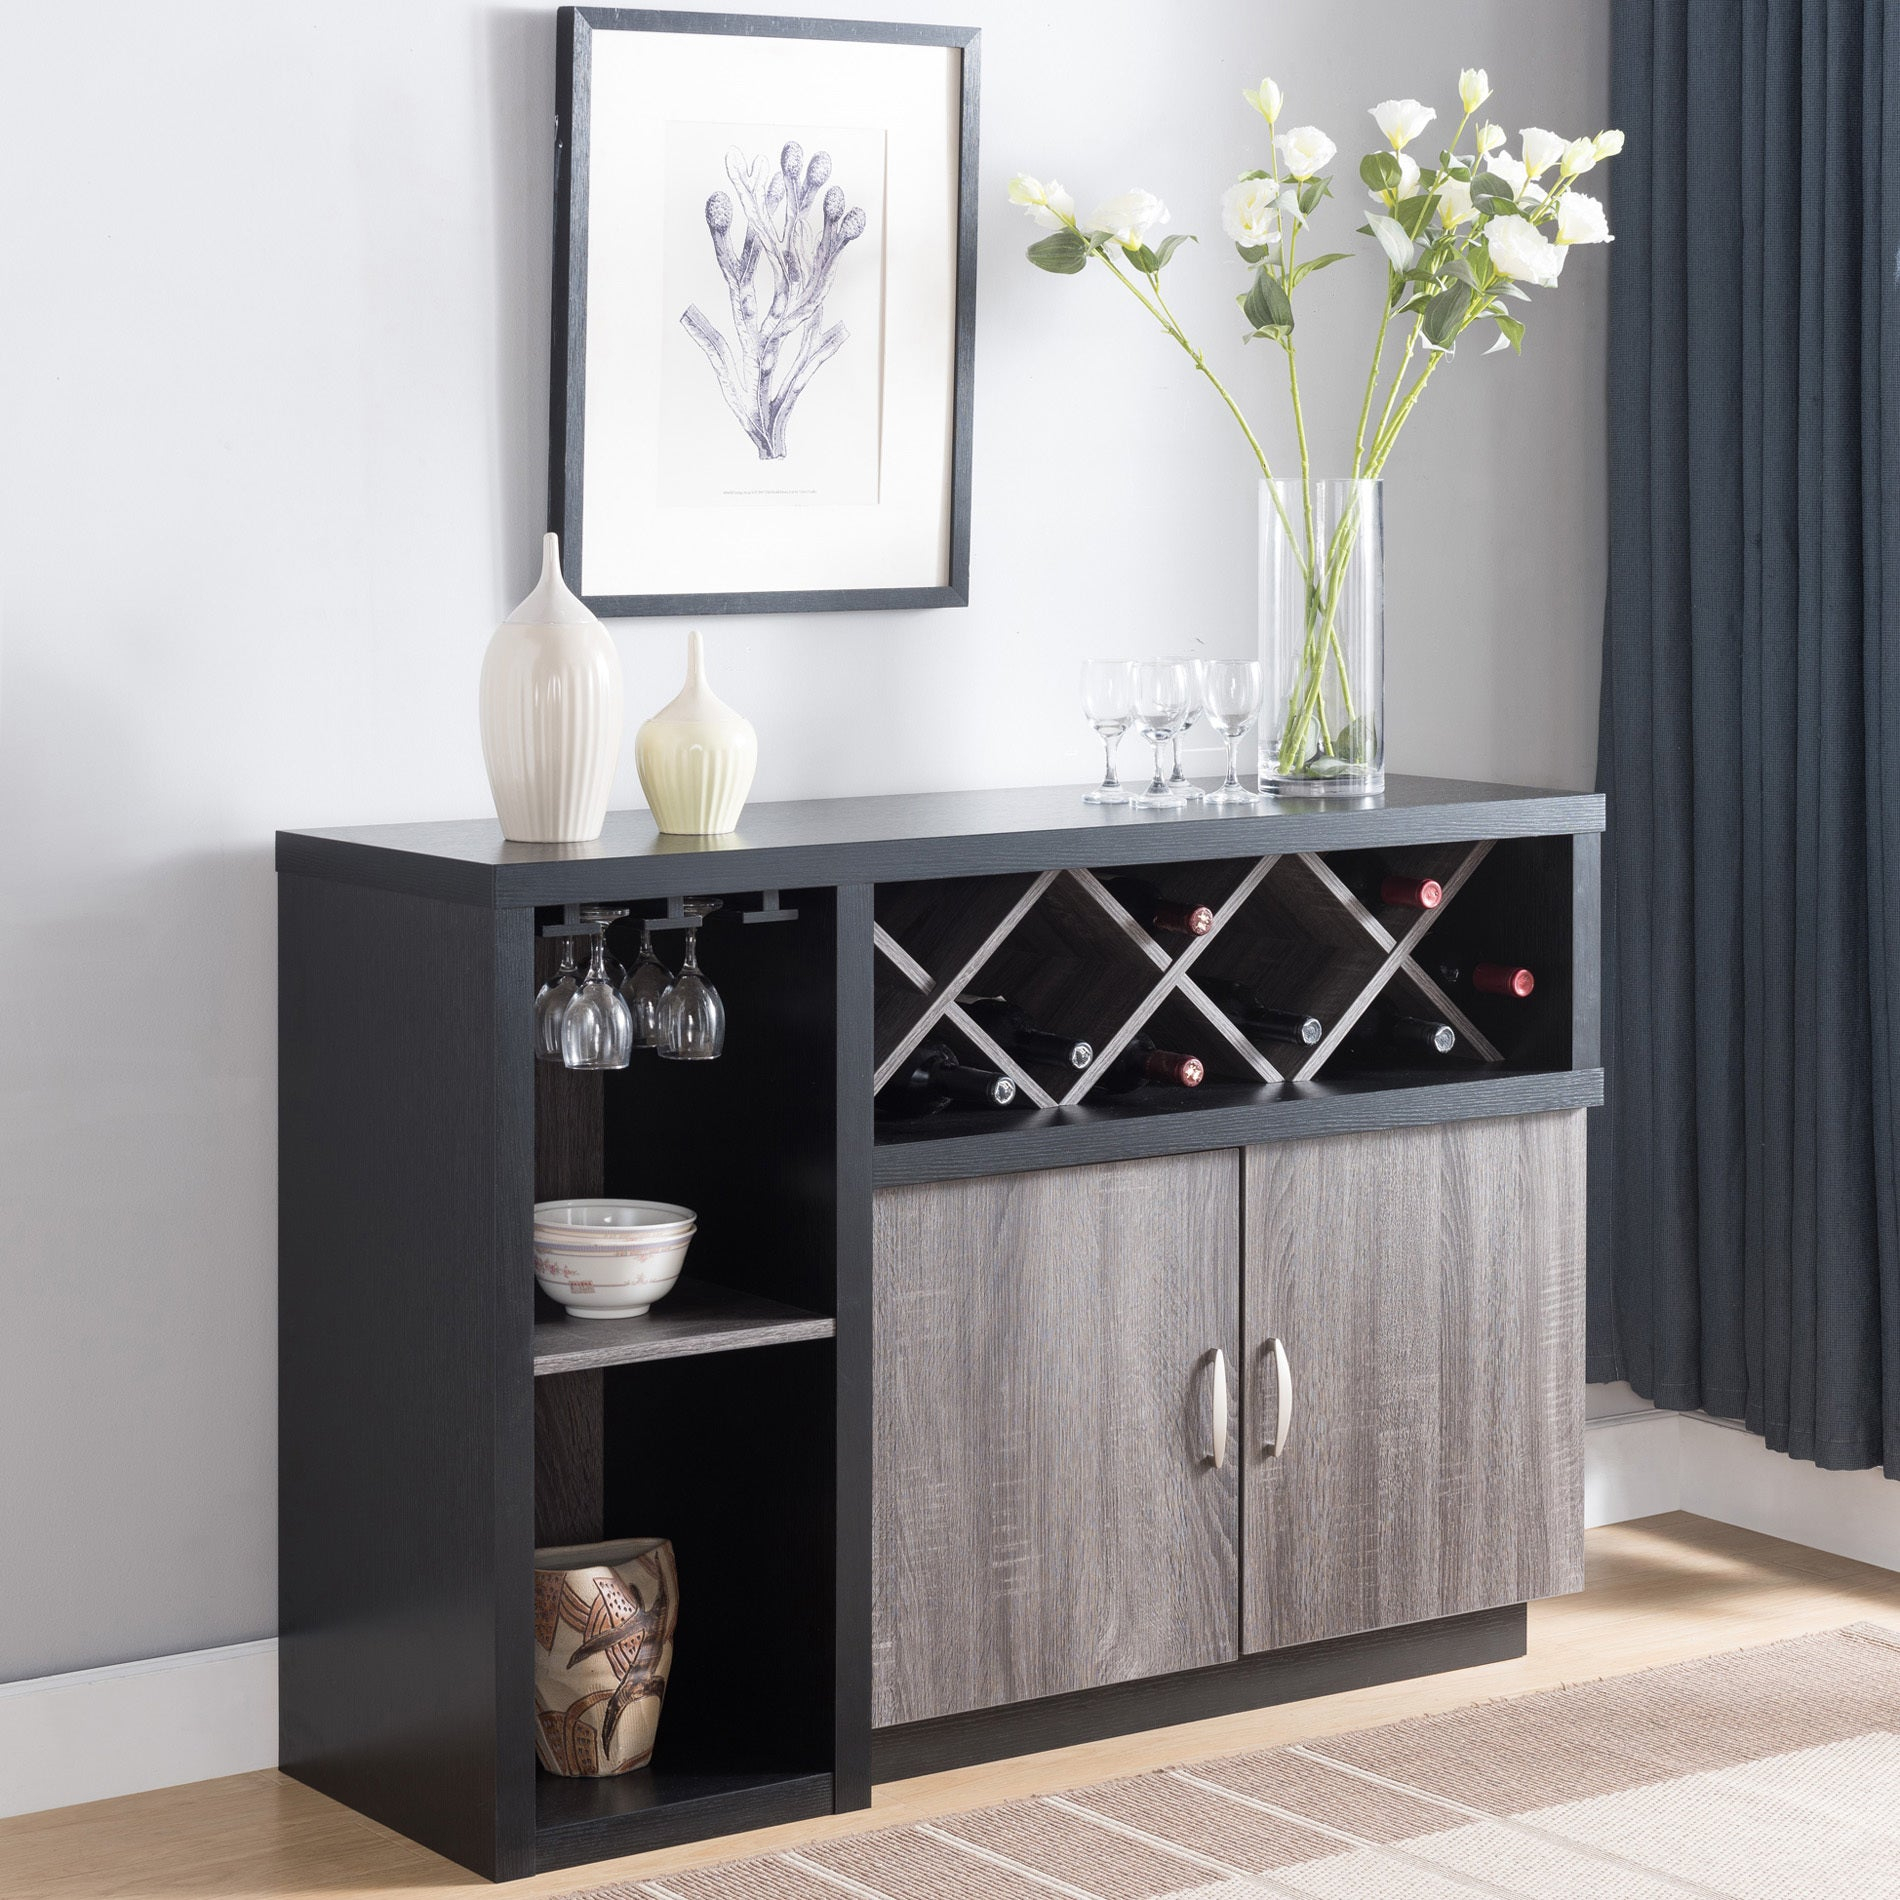 Lantana Contemporary Distressed Grey Buffetfoa Pertaining To Contemporary Style Wooden Buffets With Two Side Door Storage Cabinets (View 15 of 30)